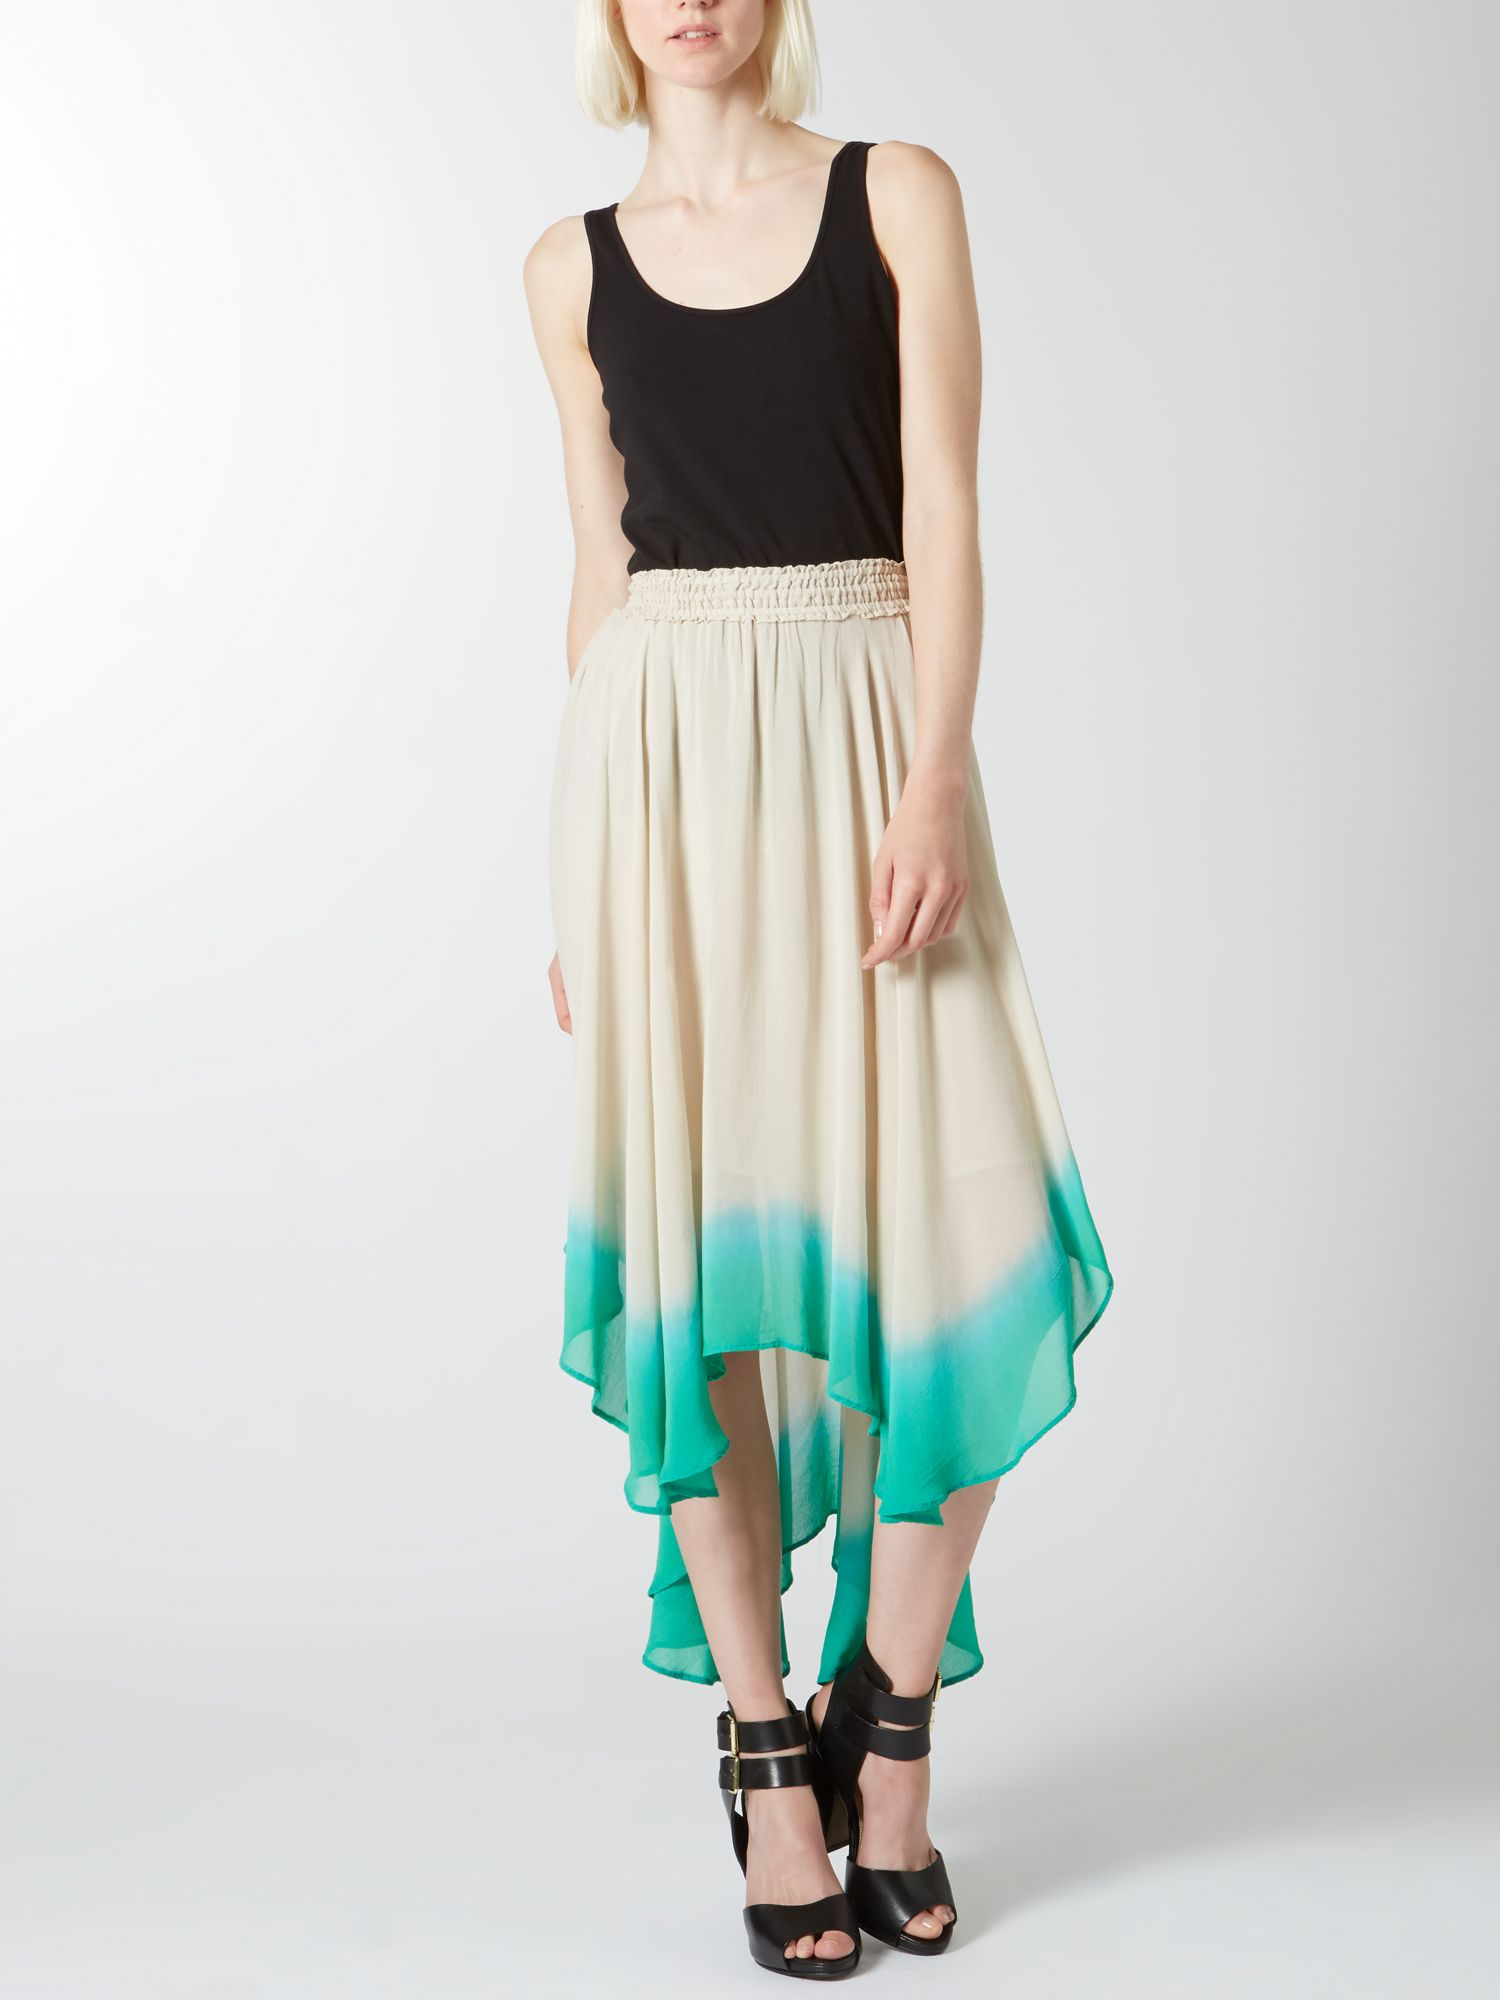 Dip dye graduated hem skirt